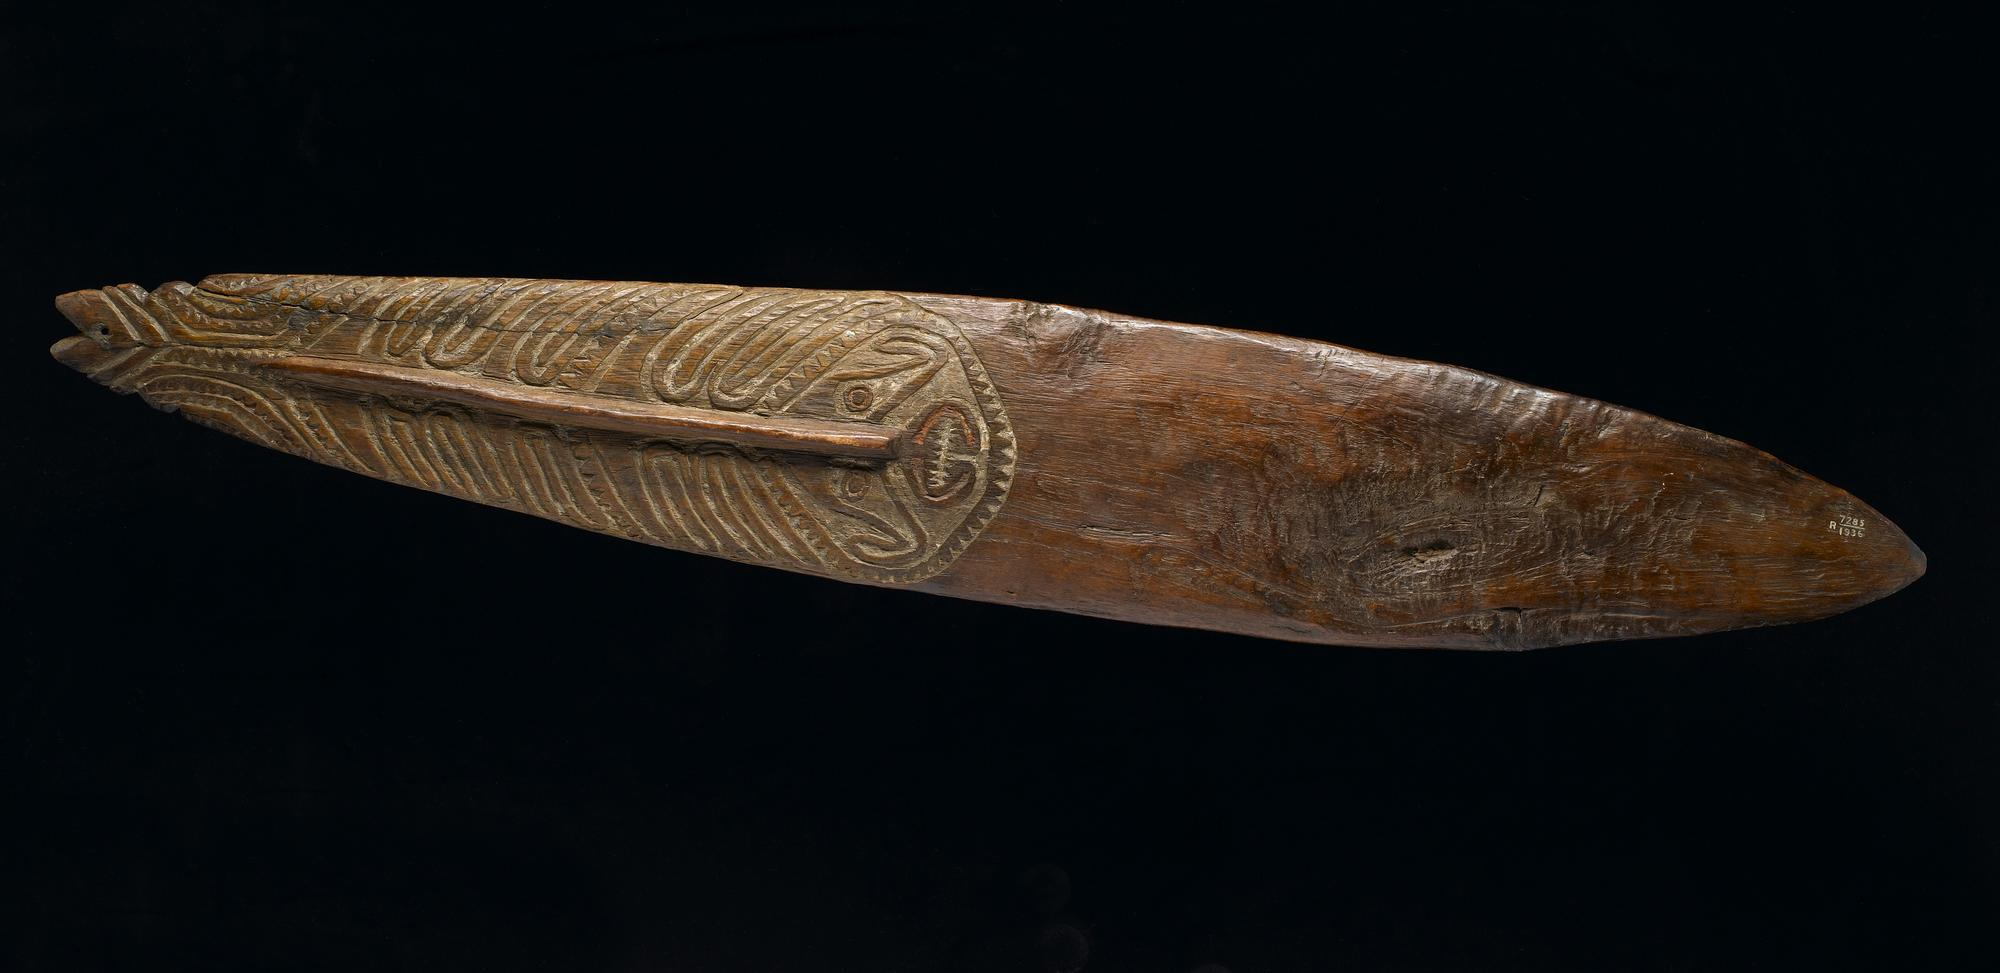 Bullroarer made of wood, carved with designs, including a human face, and decorated with pigment: Oceania, Melanesia, Papua New Guinea, Gulf Region, 19th century.